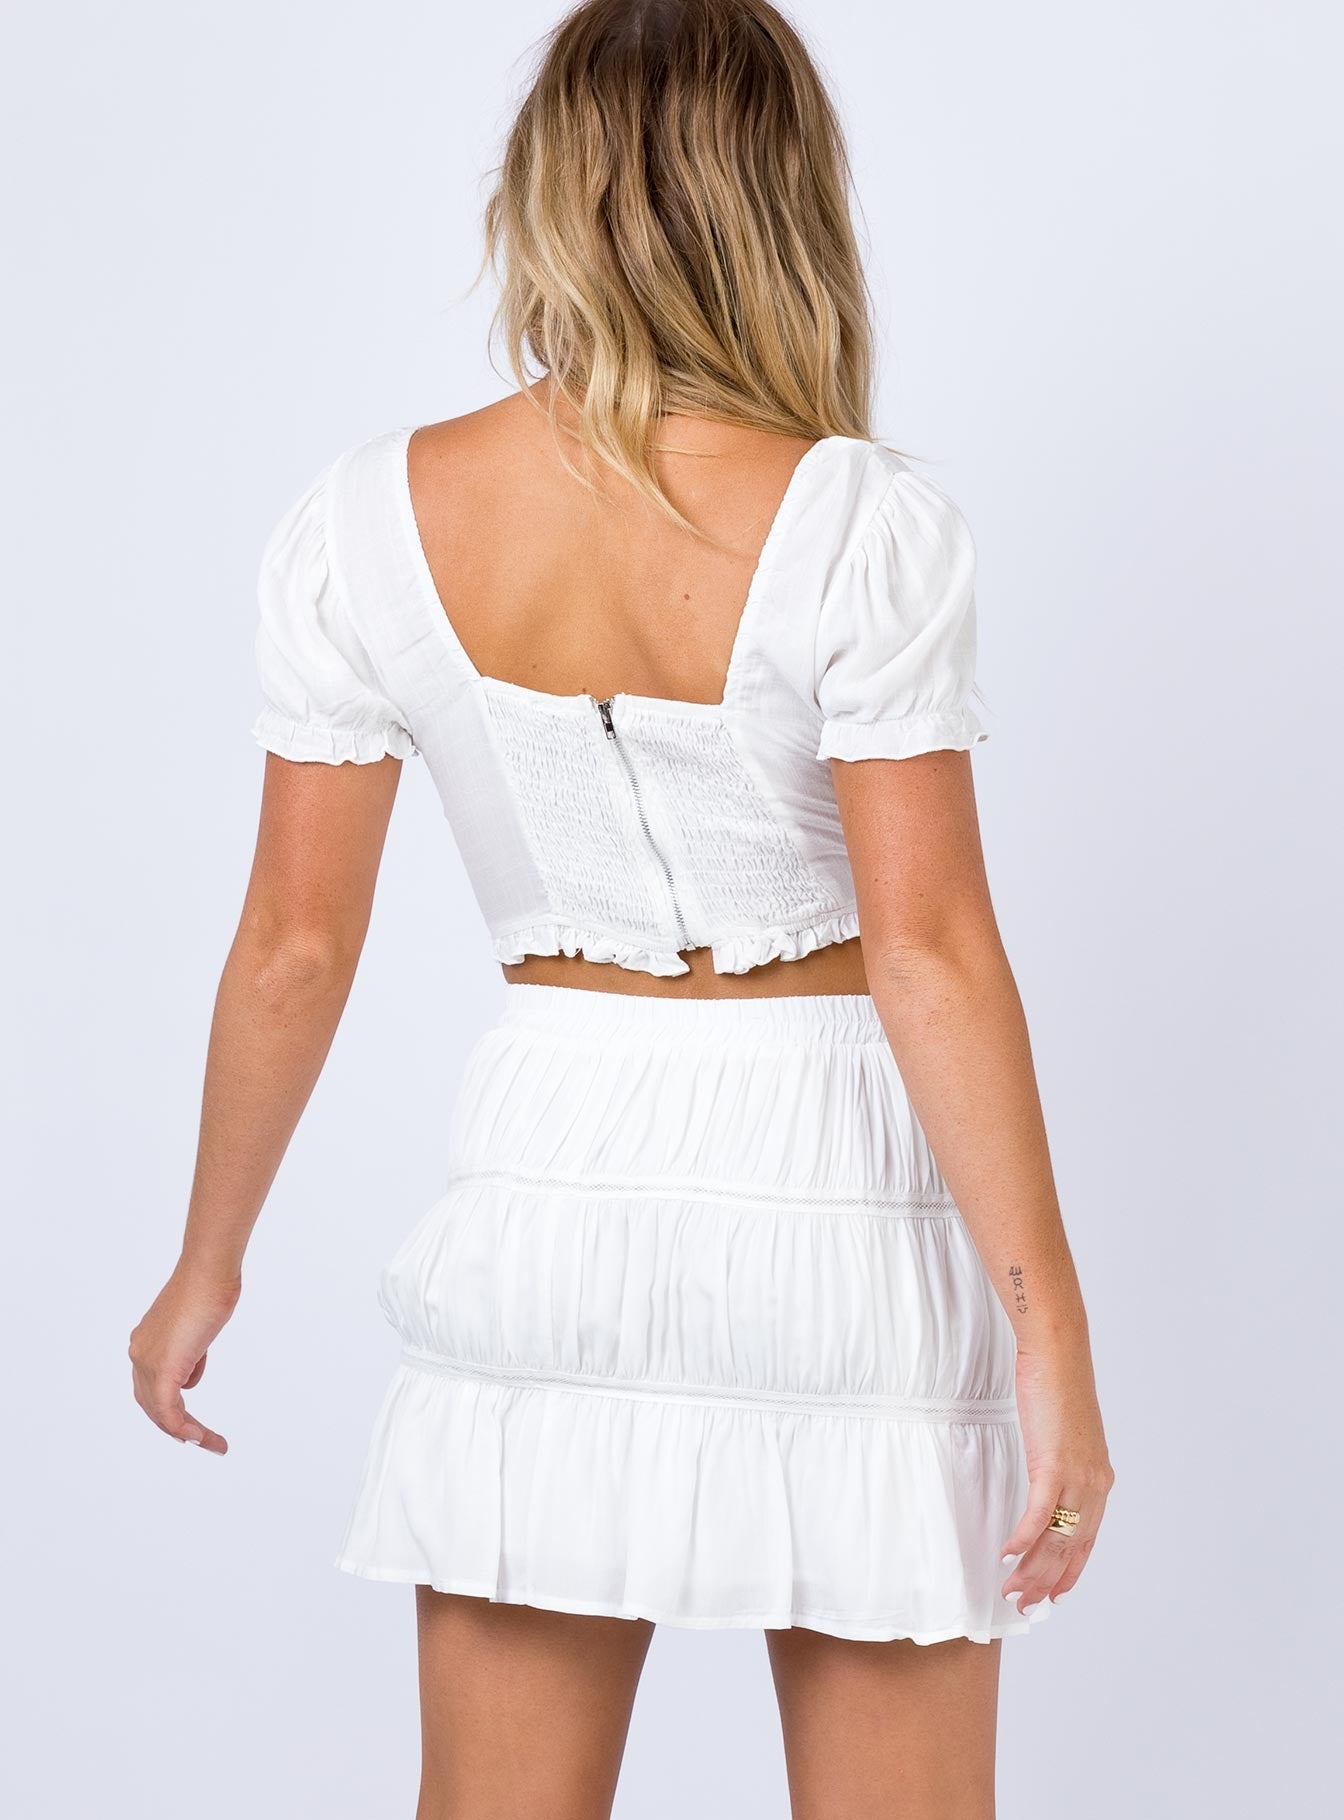 Mertens Mini Skirt White